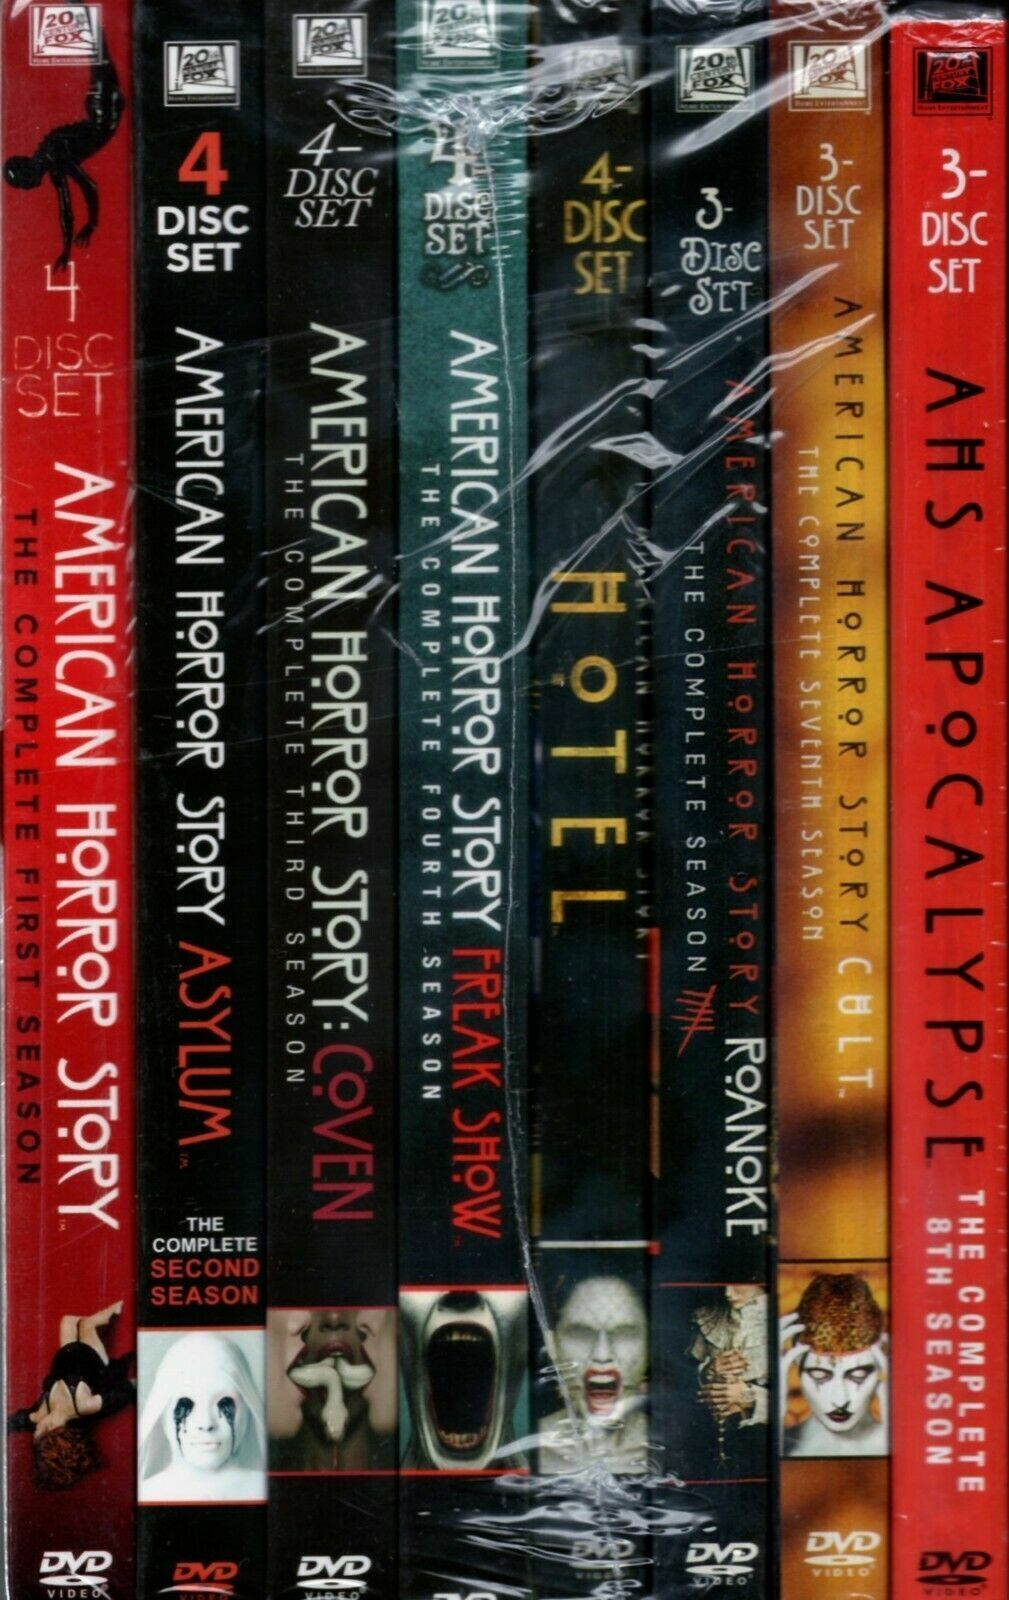 American Horror Story TV Series Complete All 1-8 Seasons DVD, Free Shipping - $66.56